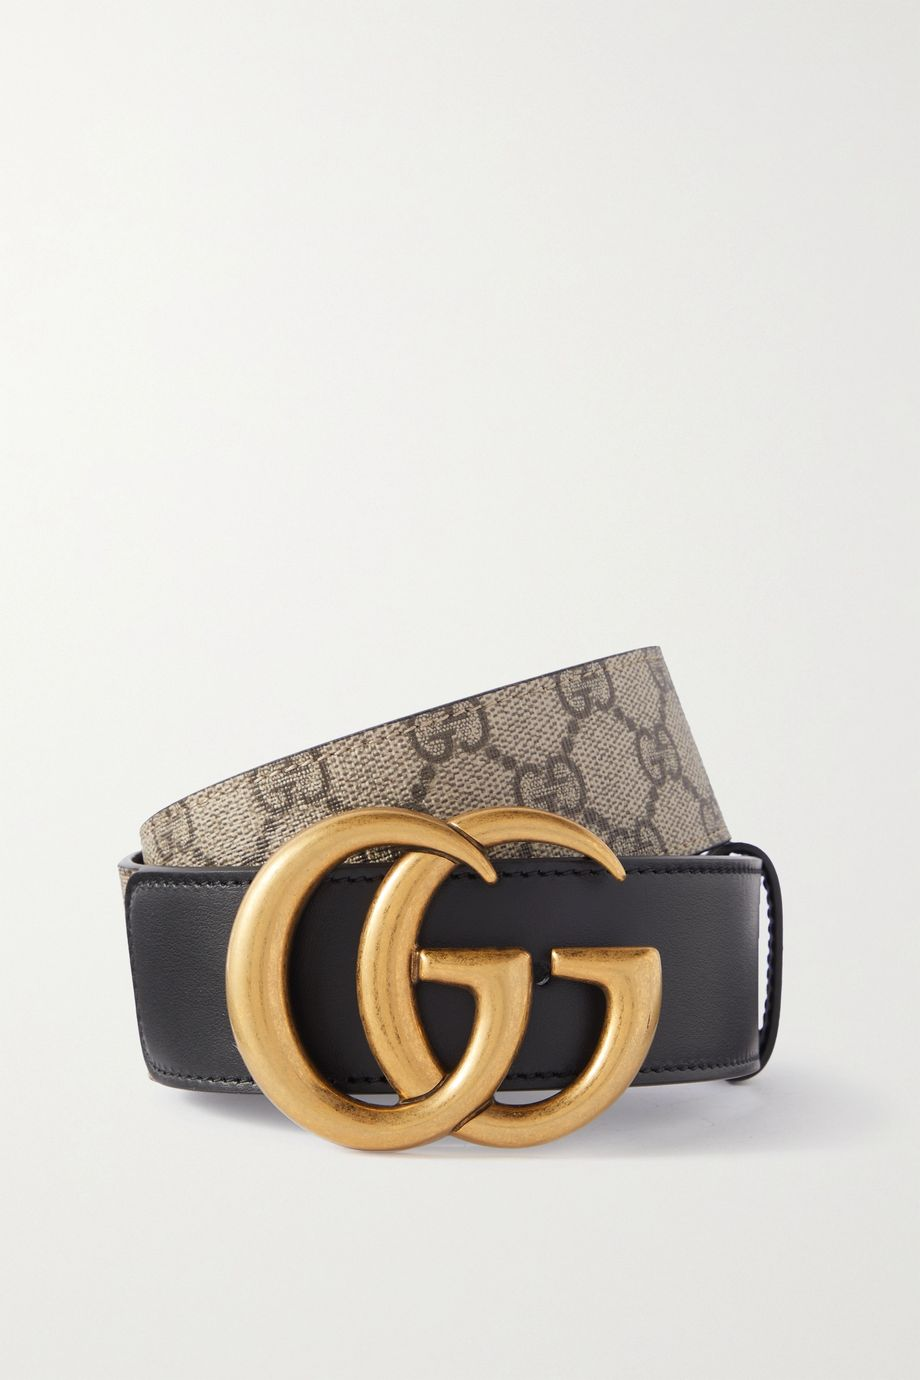 Gucci Leather-trimmed printed coated-canvas belt